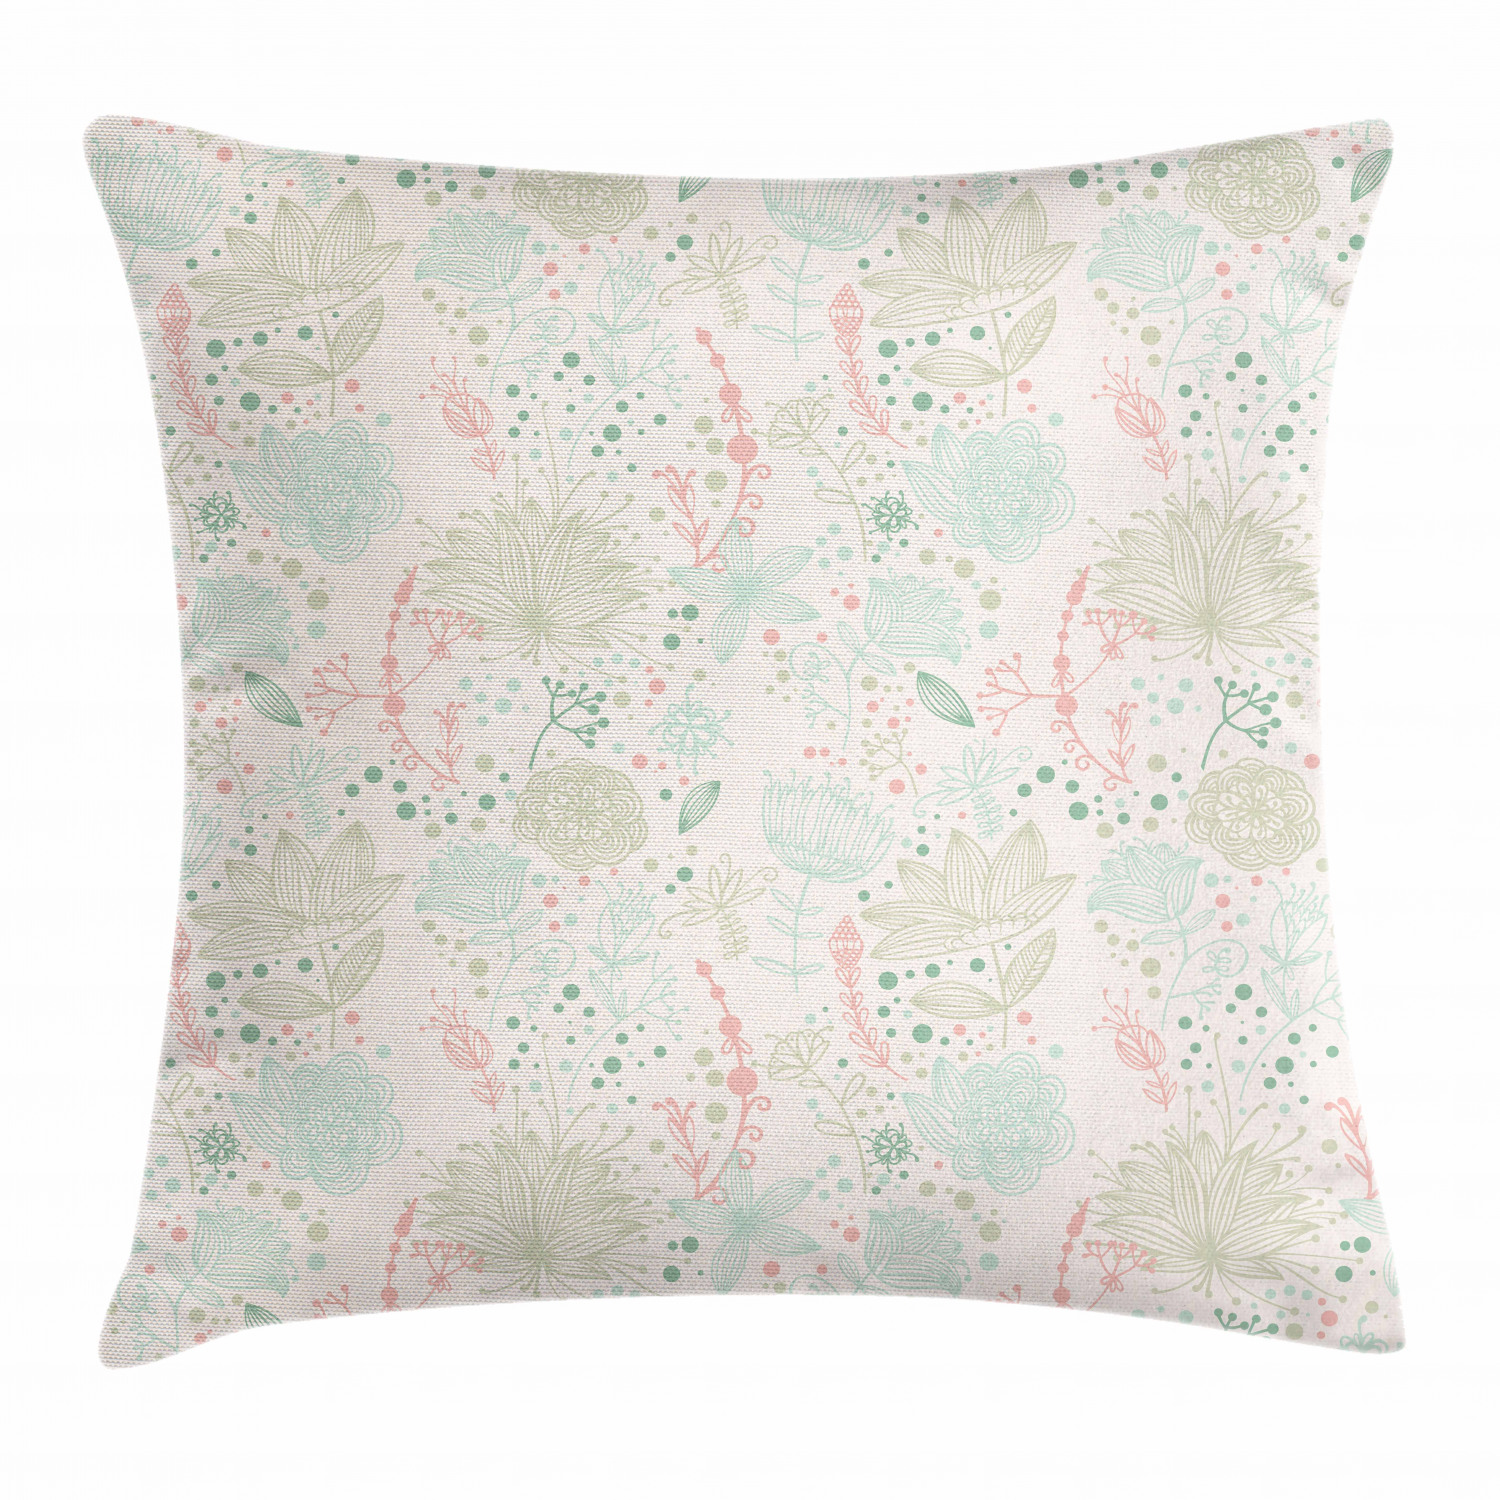 Nursing Pillow Cover Coral Dot Flowers